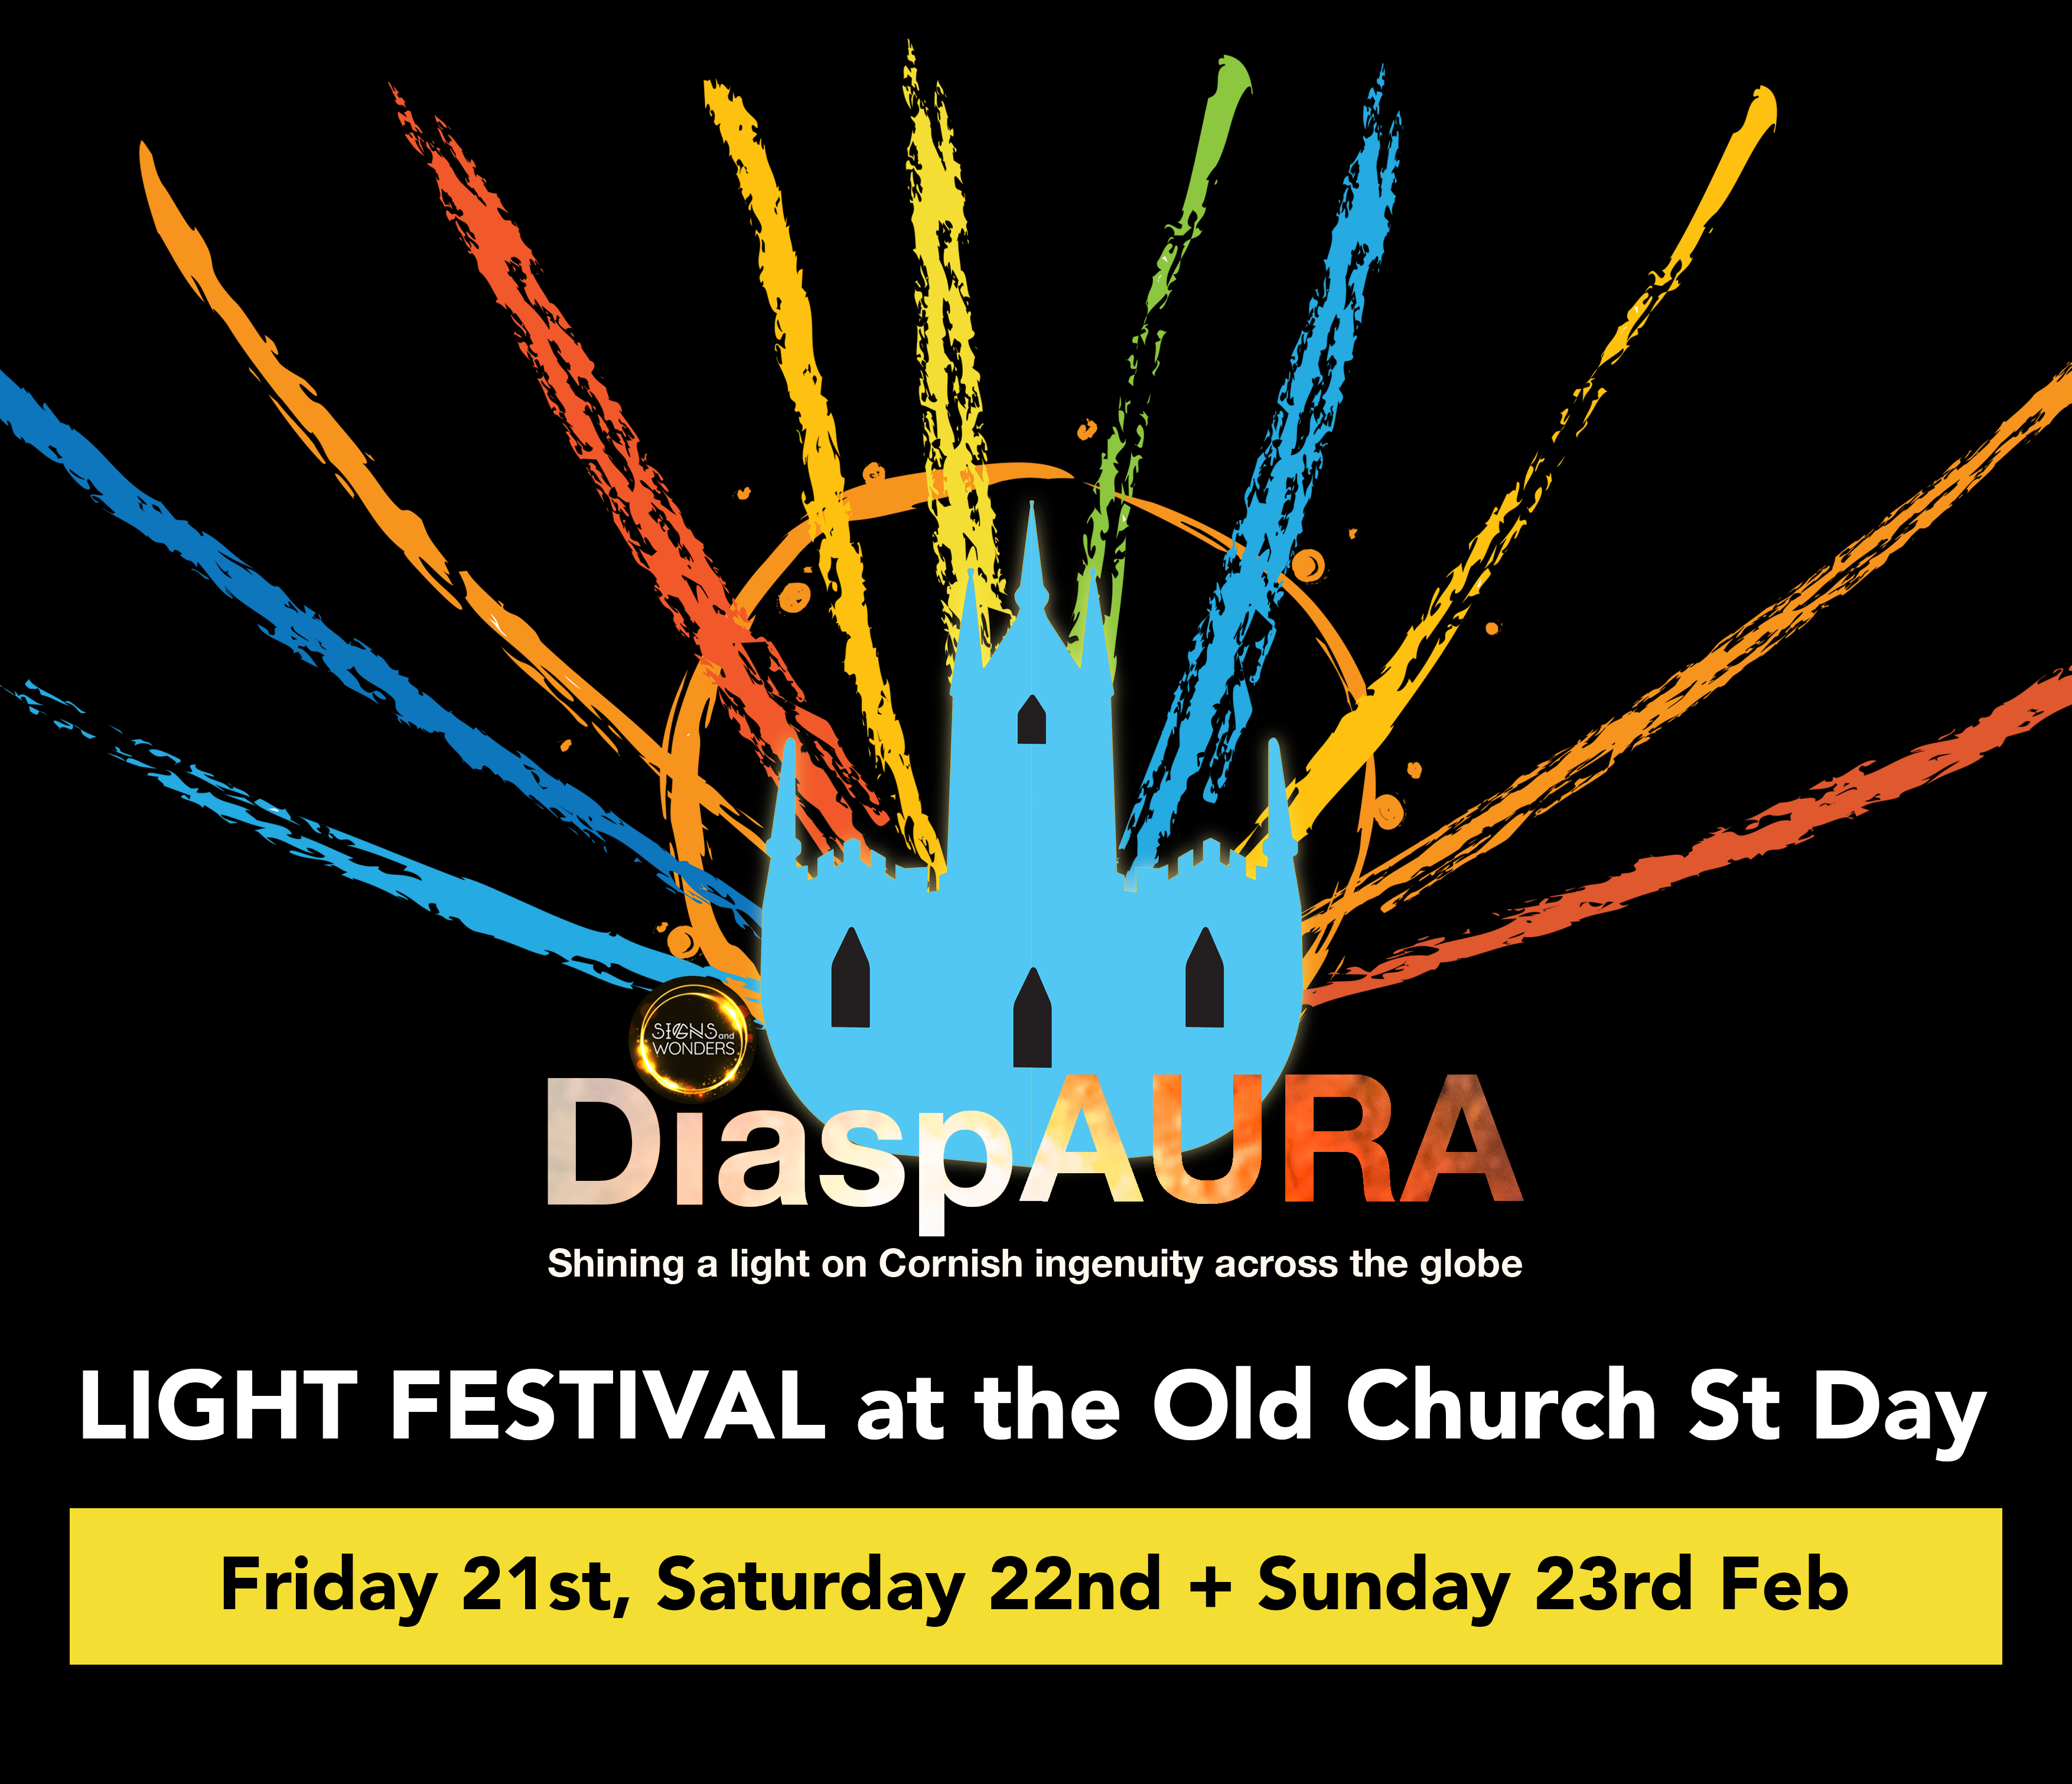 DiaspAURA LIGHT FESTIVAL